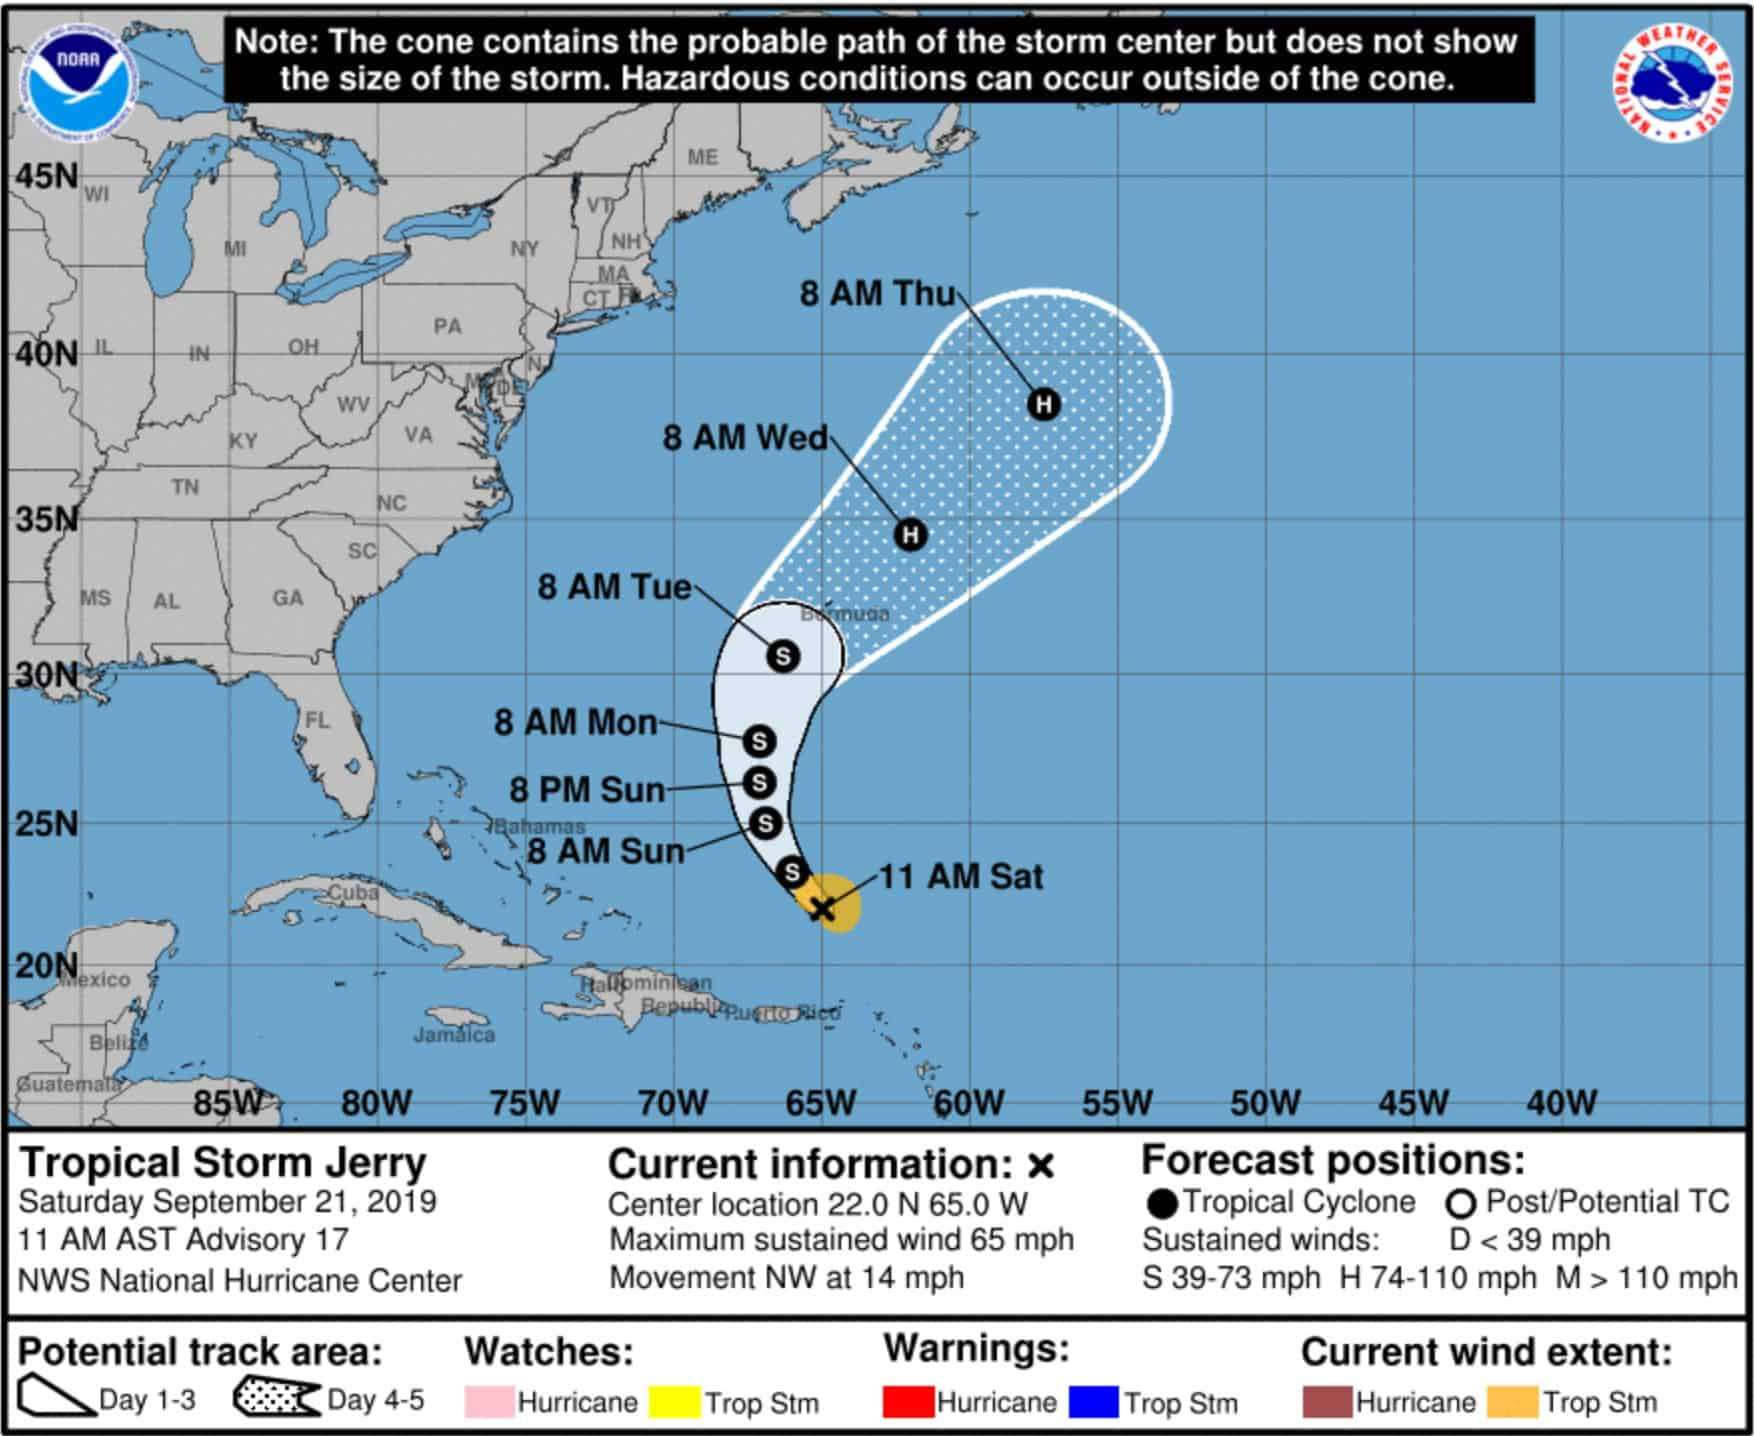 Tropical Storm Jerry